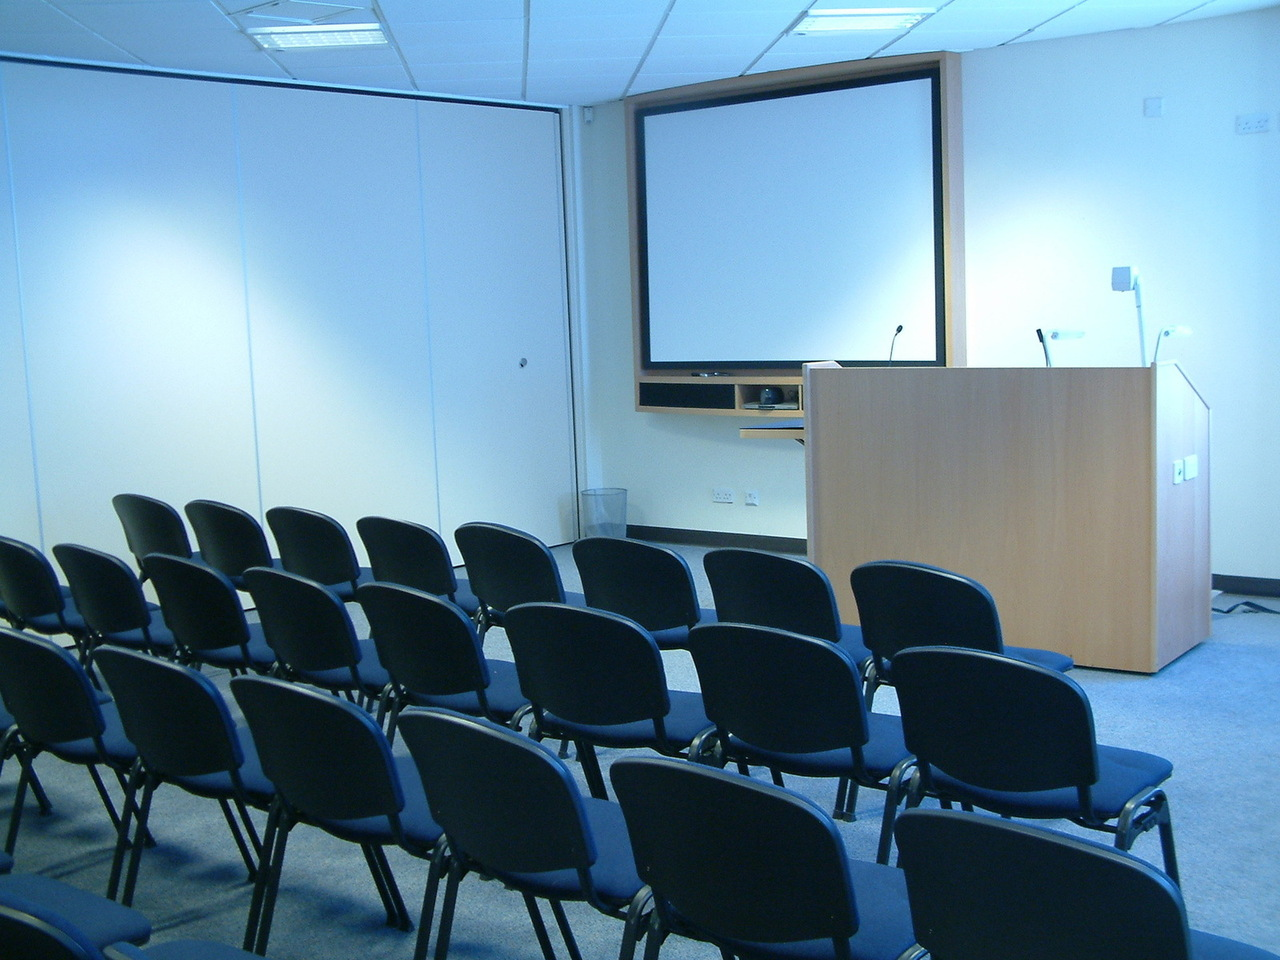 conference-room-1-1487537-1280x960.jpg